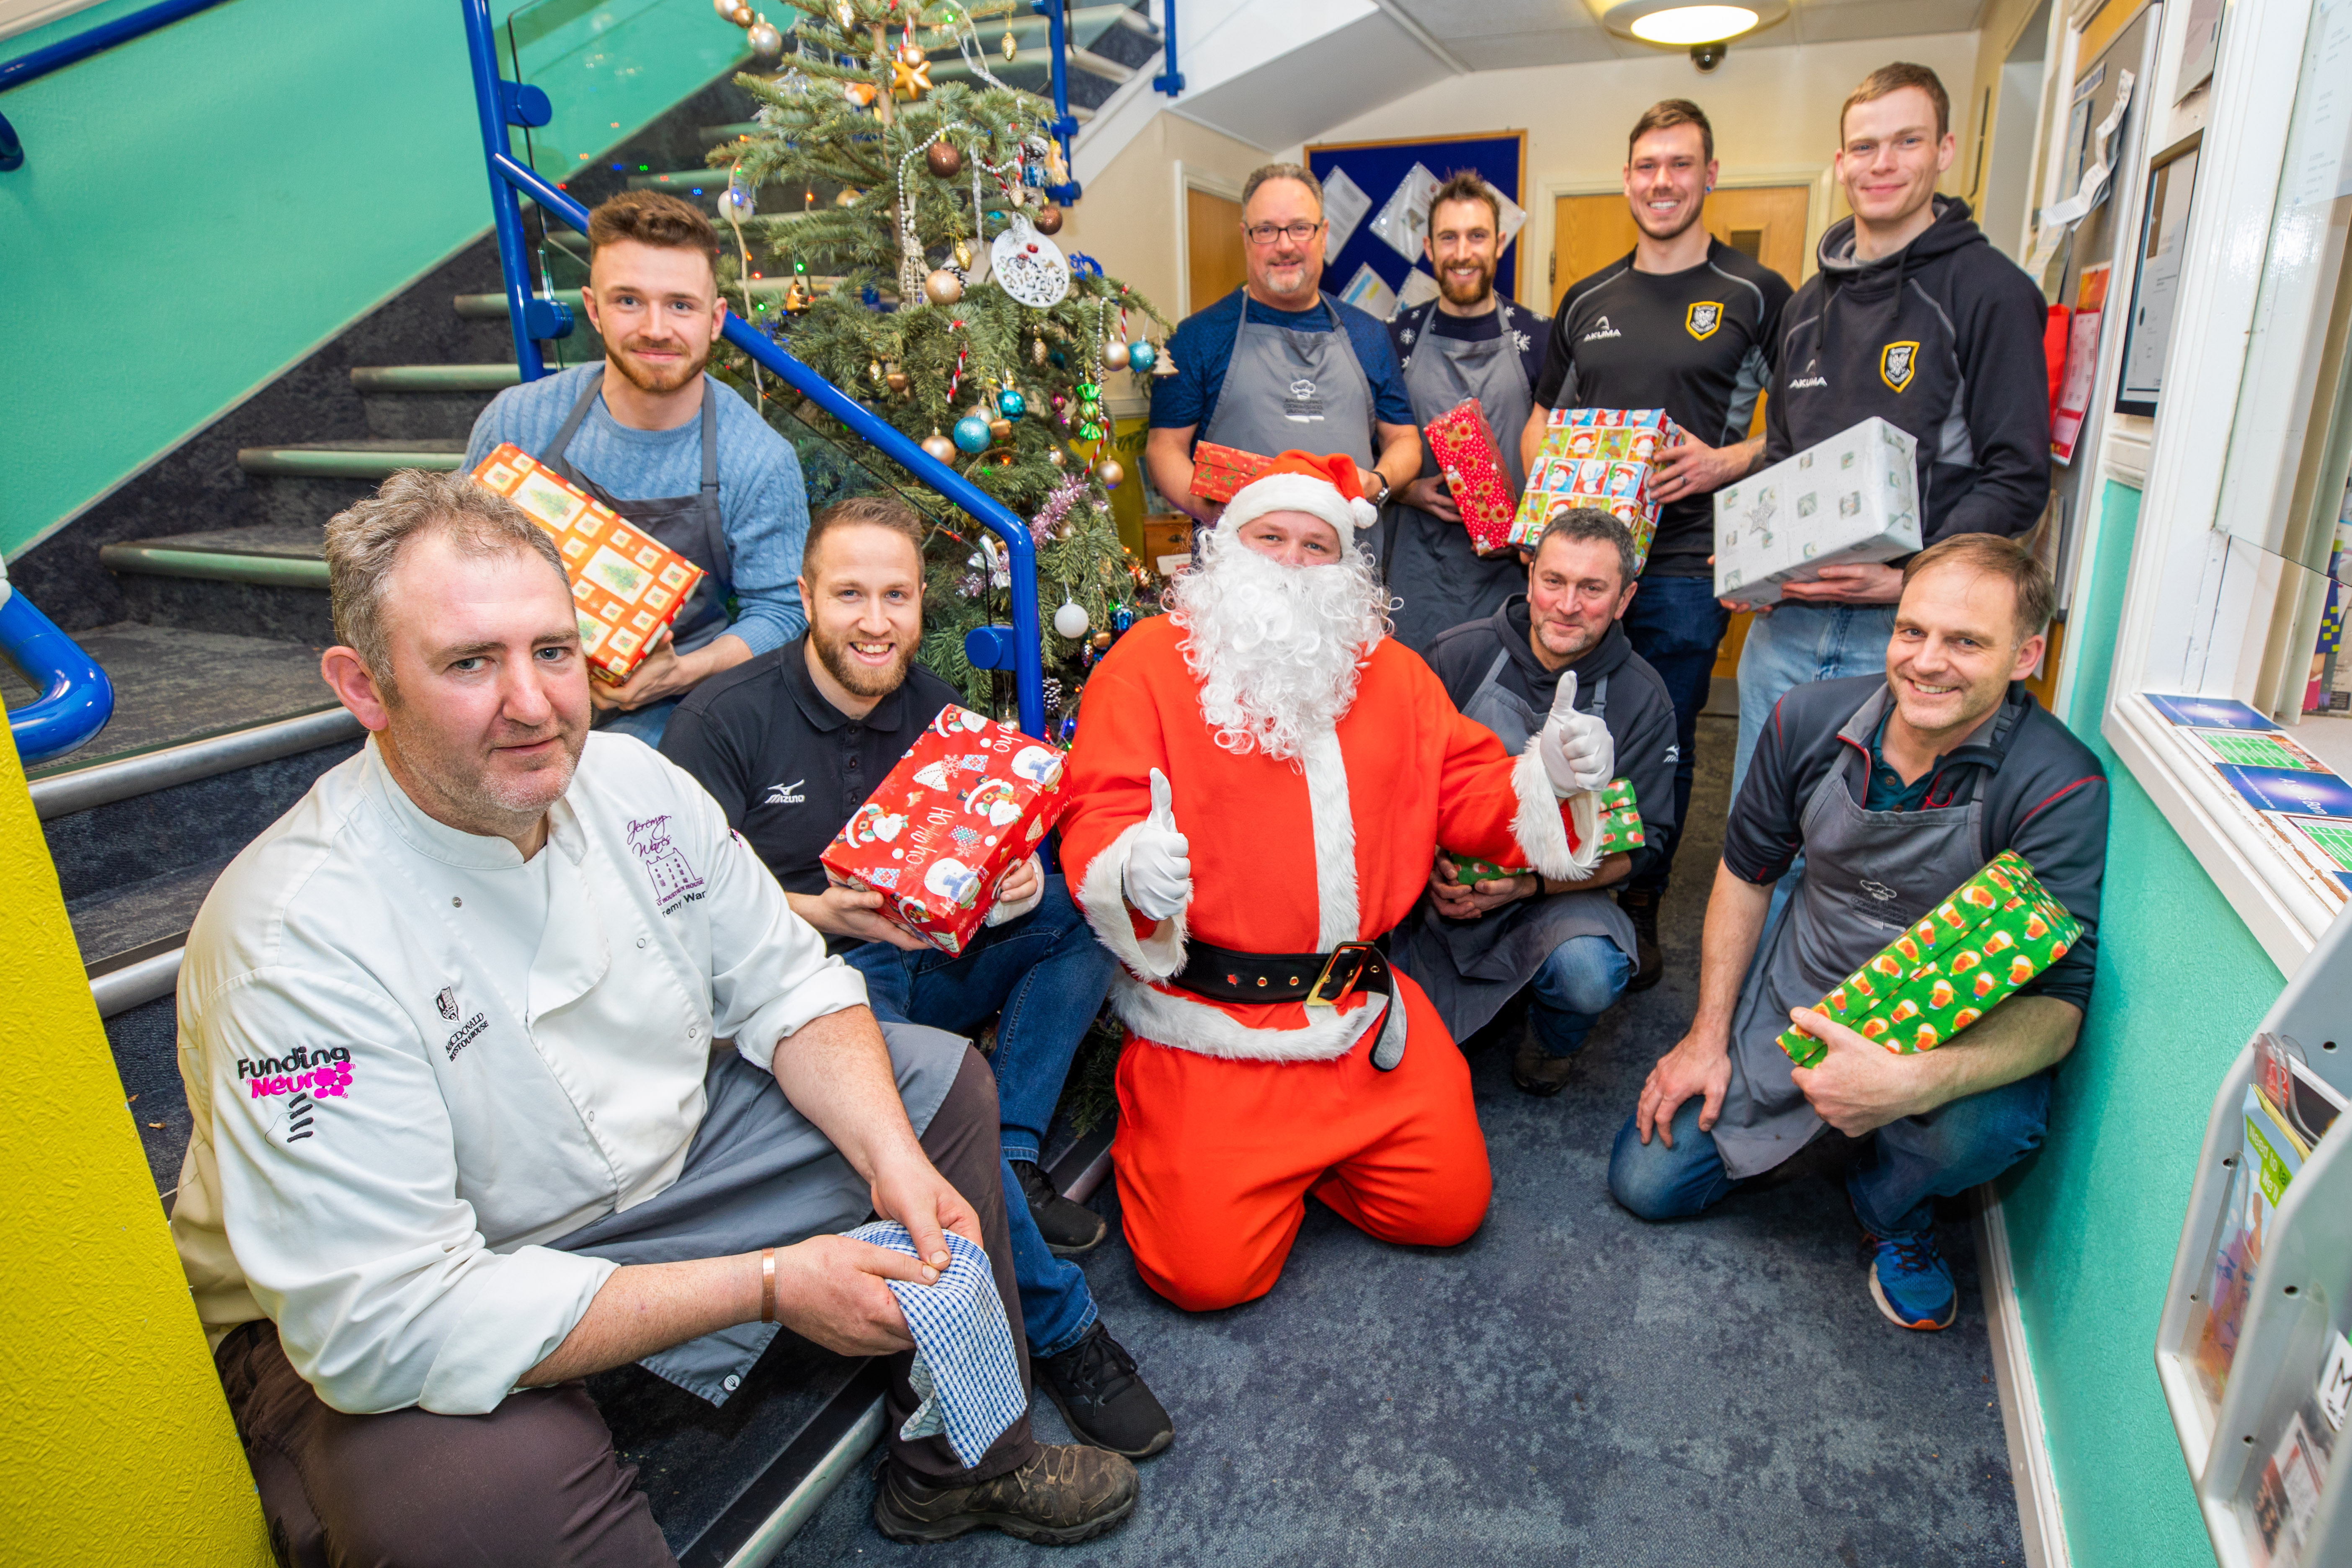 Jeremy Wares (left) alongside members of Perthshire Rugby club and Santa Claus.